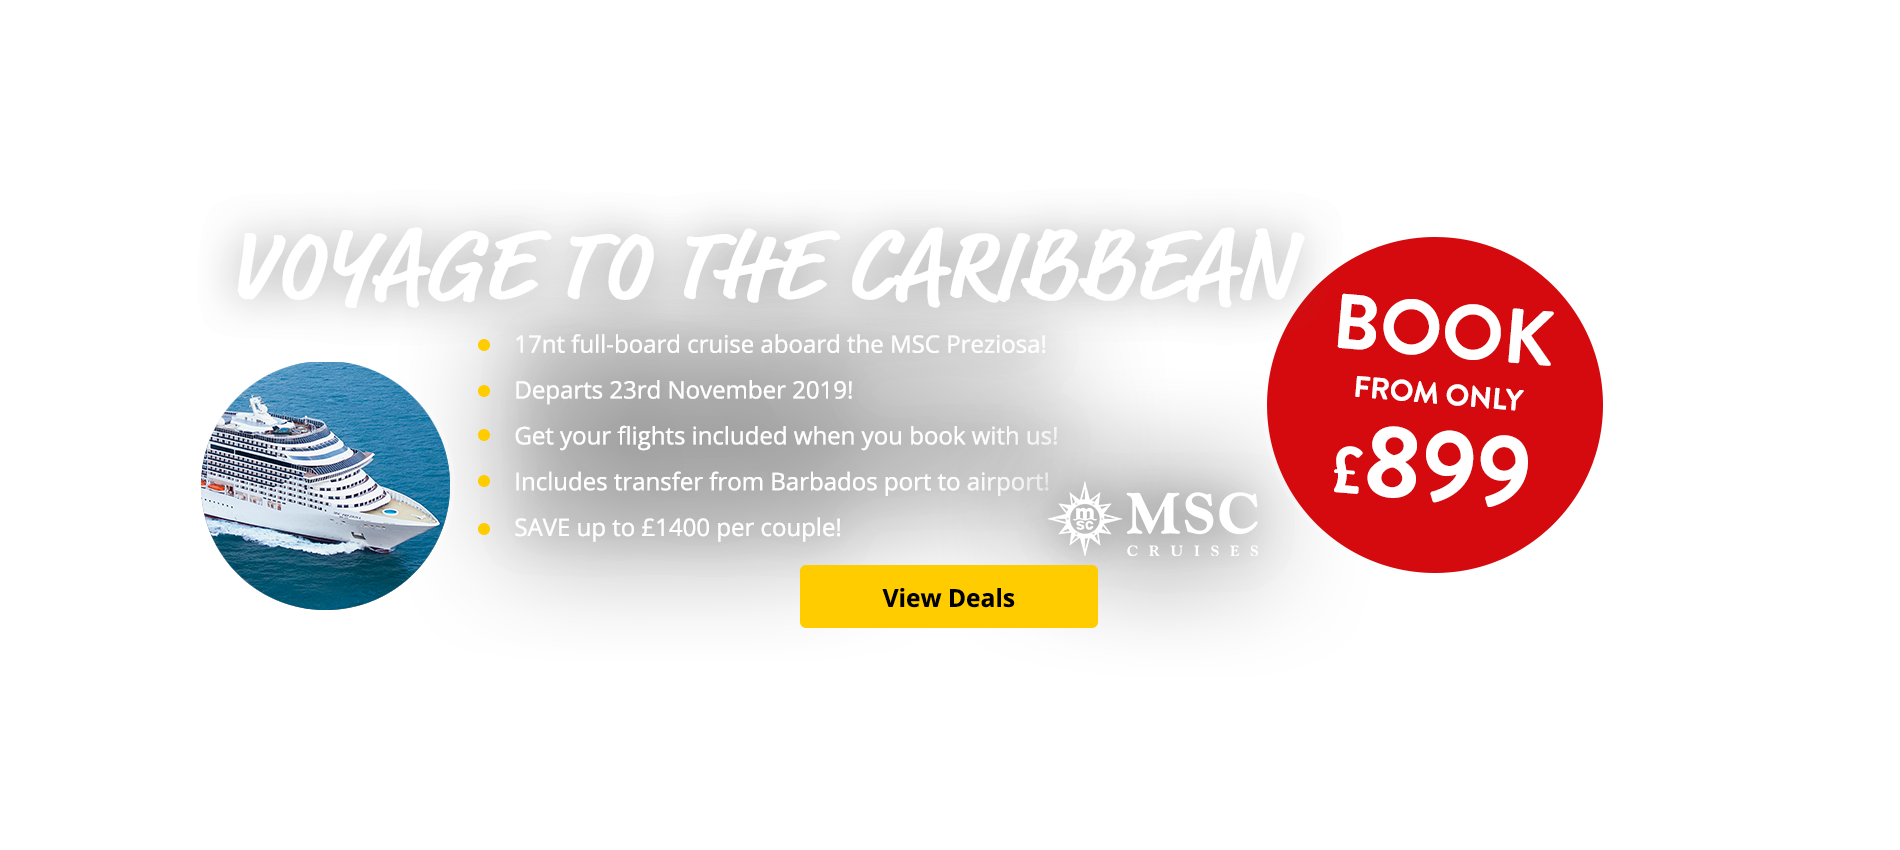 17nt full-board cruise aboard the MSC Preziosa! Departs 23rd November 2019! SAVE up to £1400 per couple!